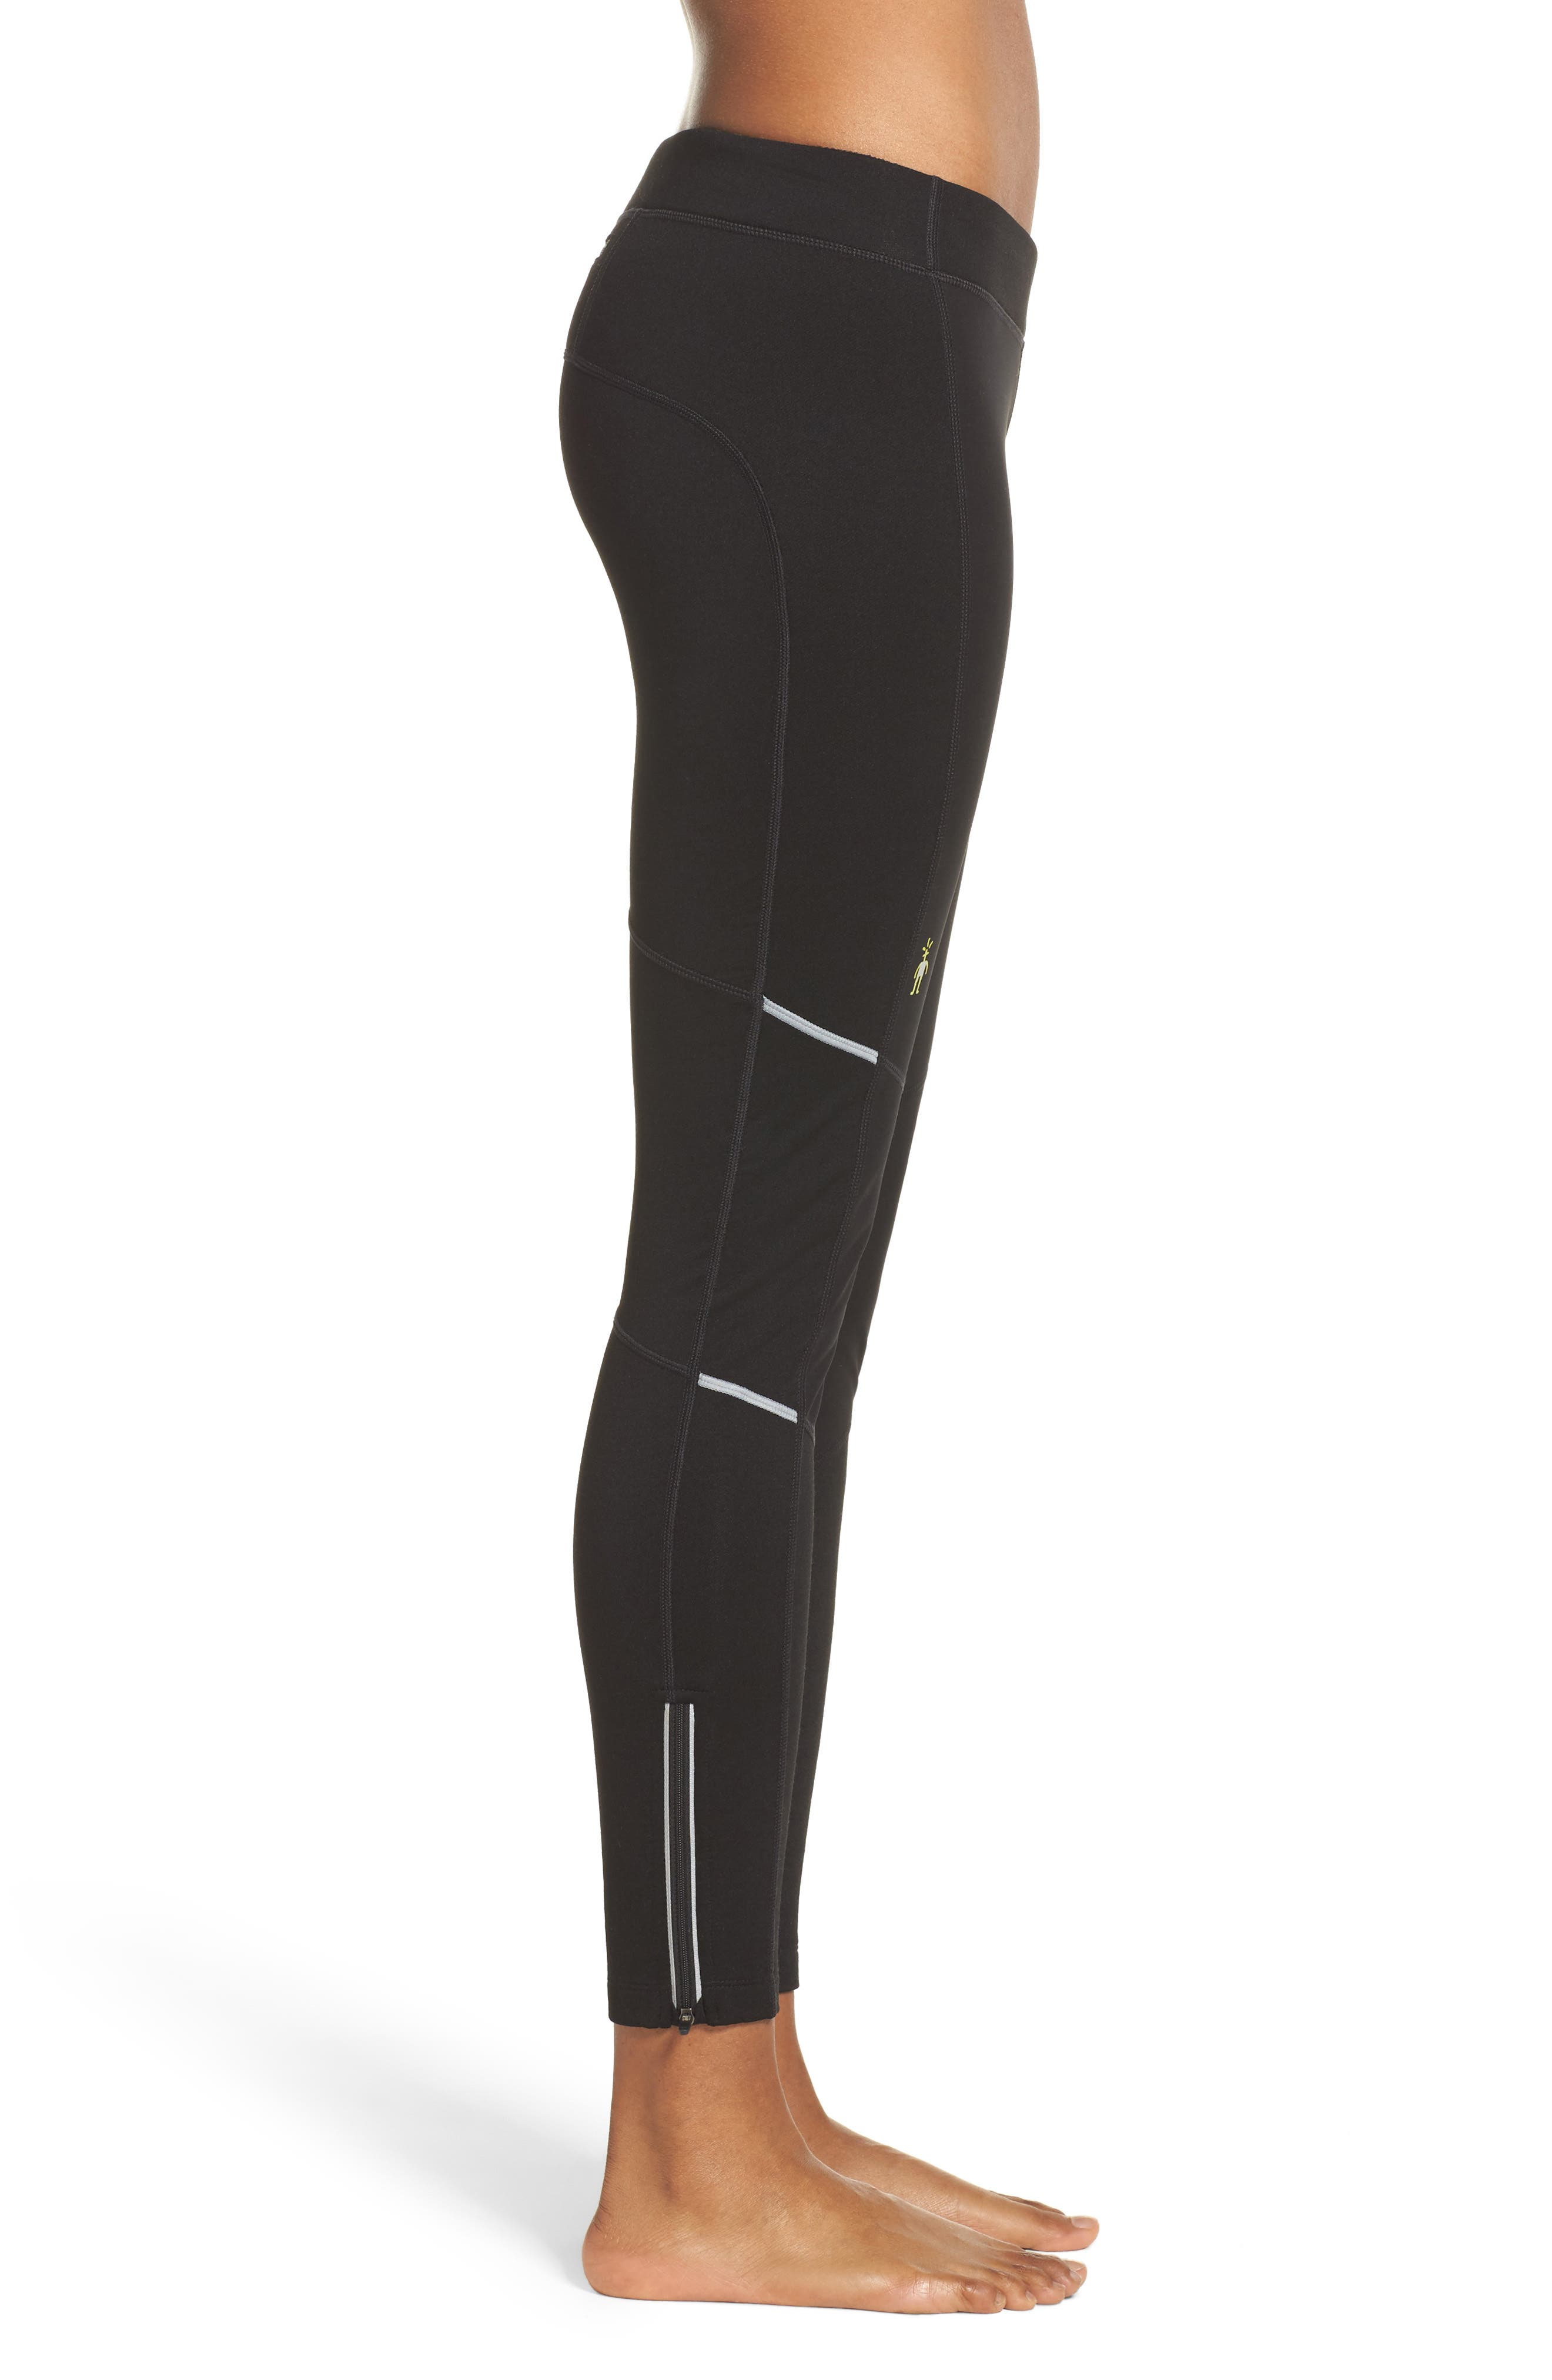 PhD Wind Tights,                             Alternate thumbnail 3, color,